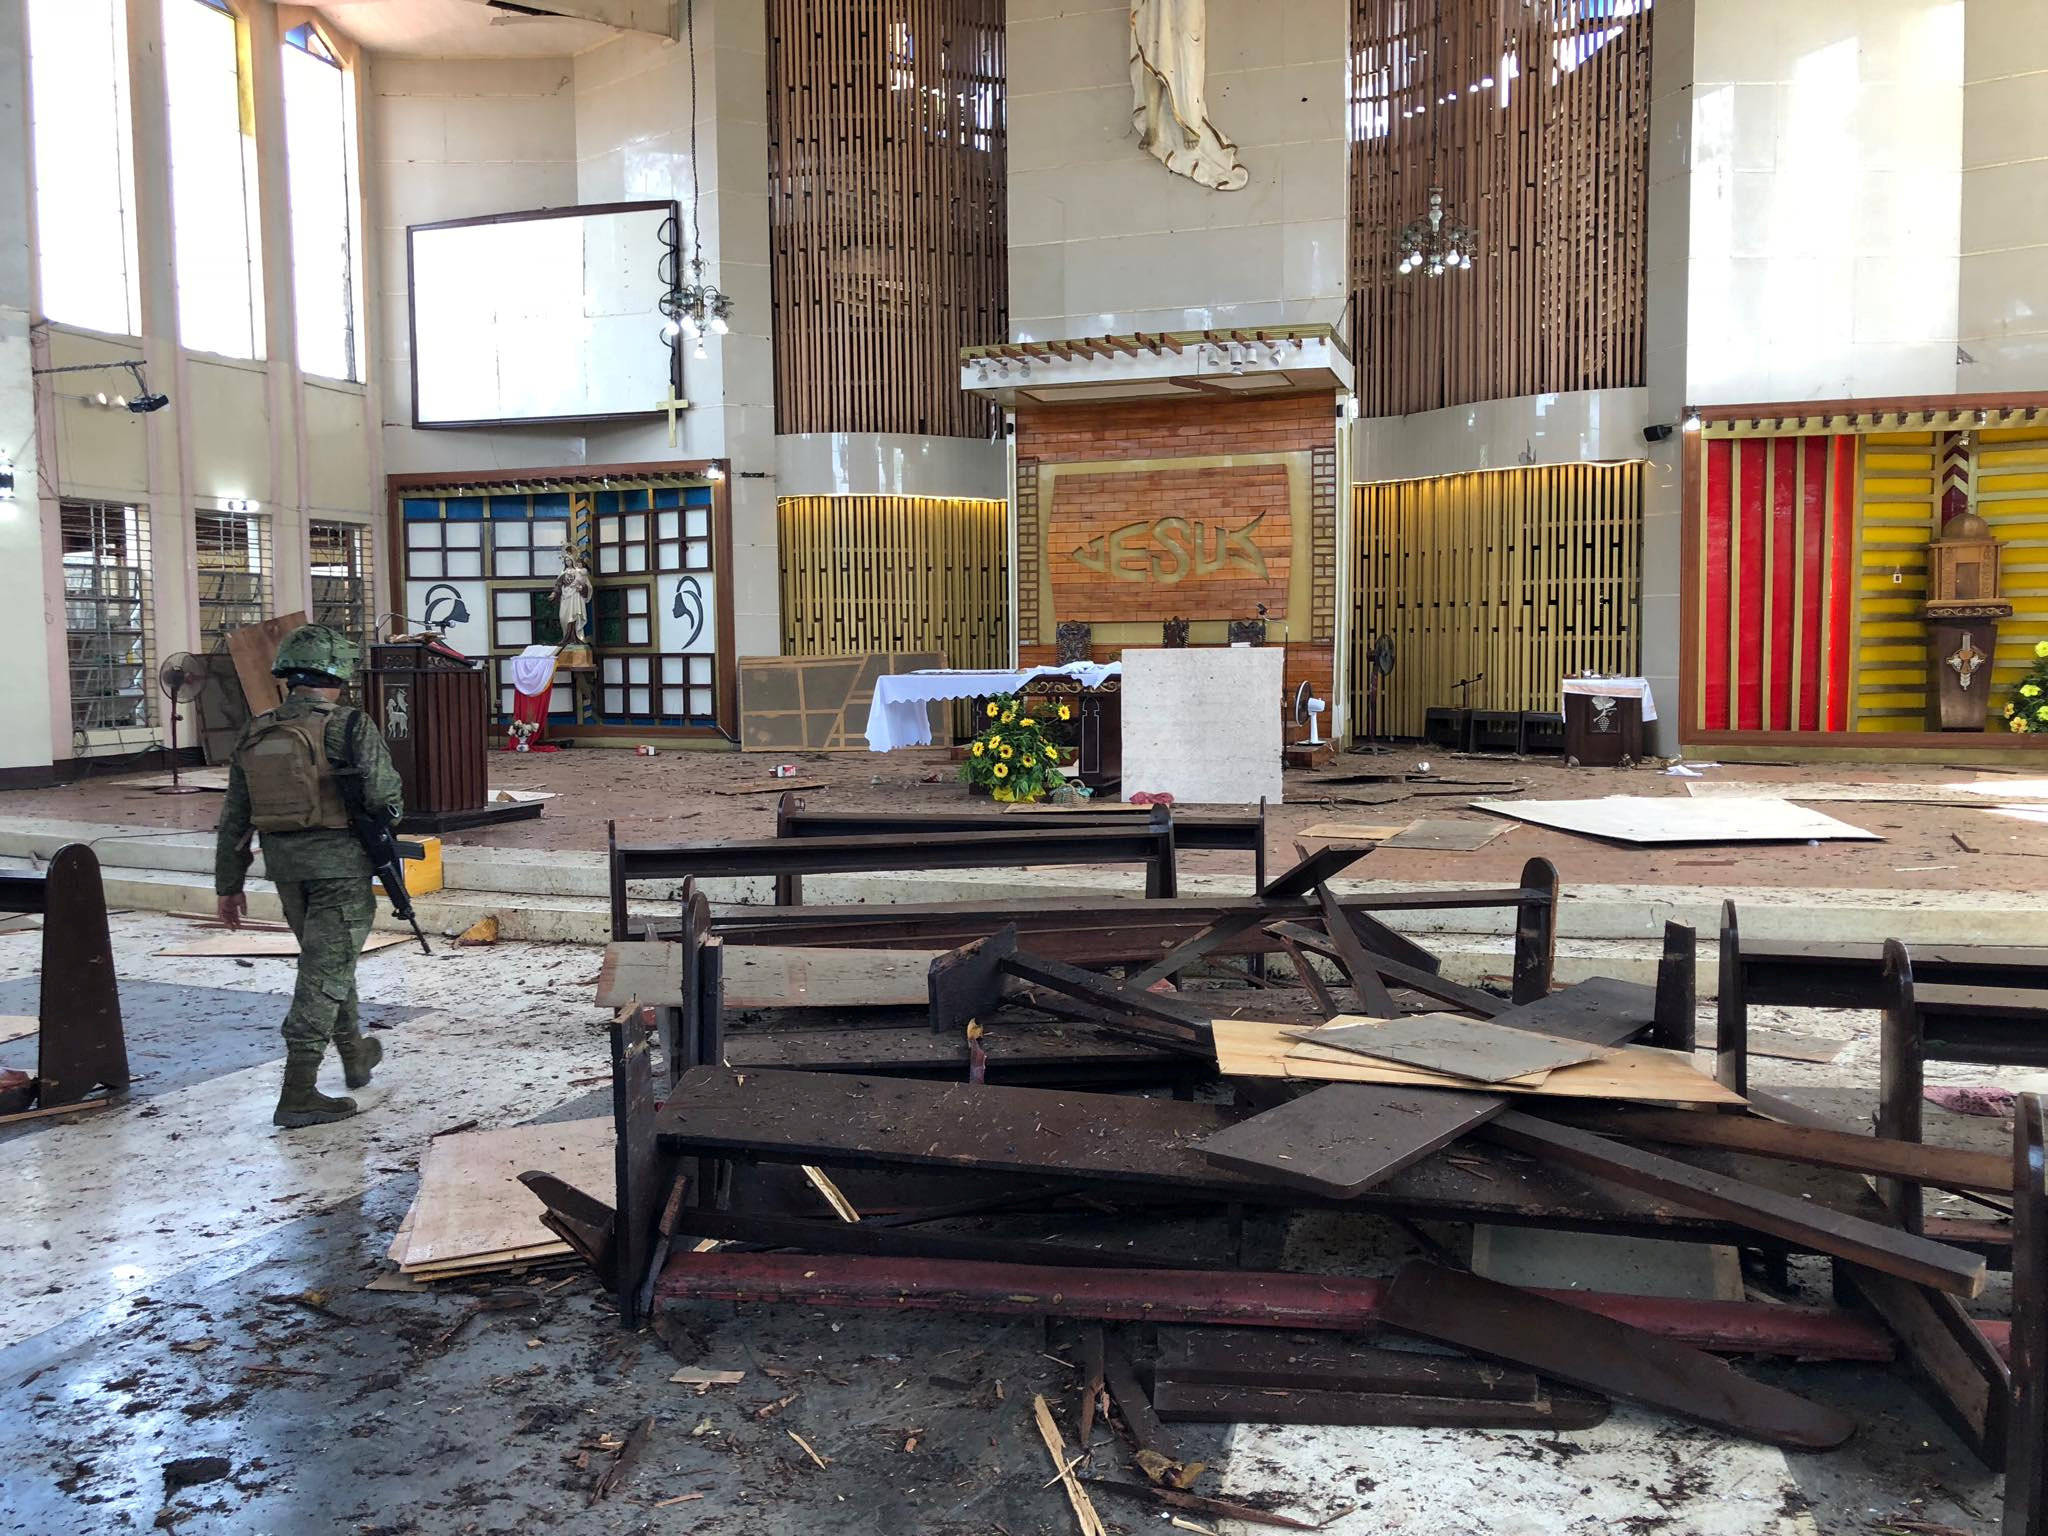 A Philippine Army member walks inside a church after a bombing attack in Jolo, Sulu province, Philippines January 27, 2019. Armed Forces of the Philippines - Western Mindanao Command/Handout via REUTERS